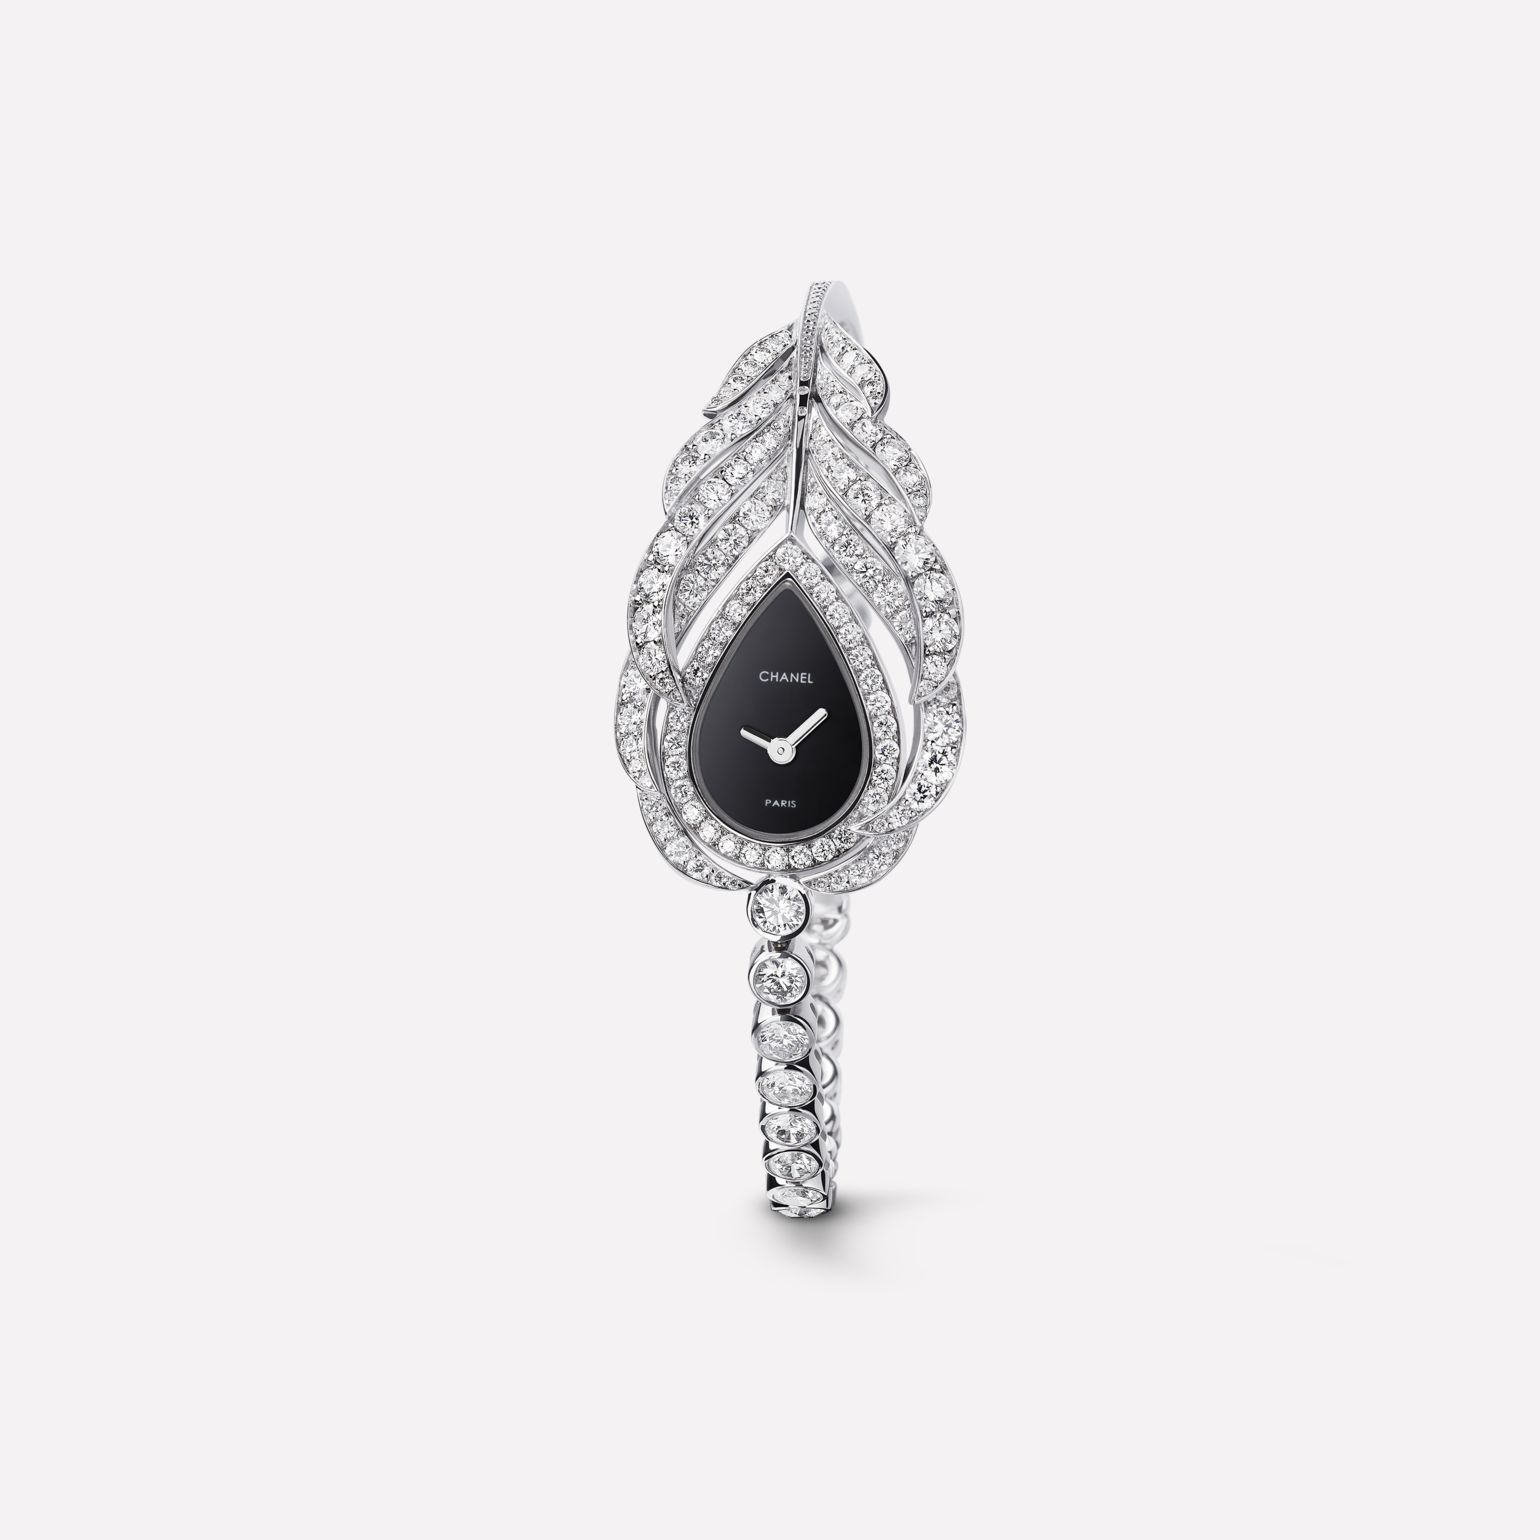 Plume de CHANEL Jewellery Watch Plume motif in 18K white gold and diamonds with diamond bracelet